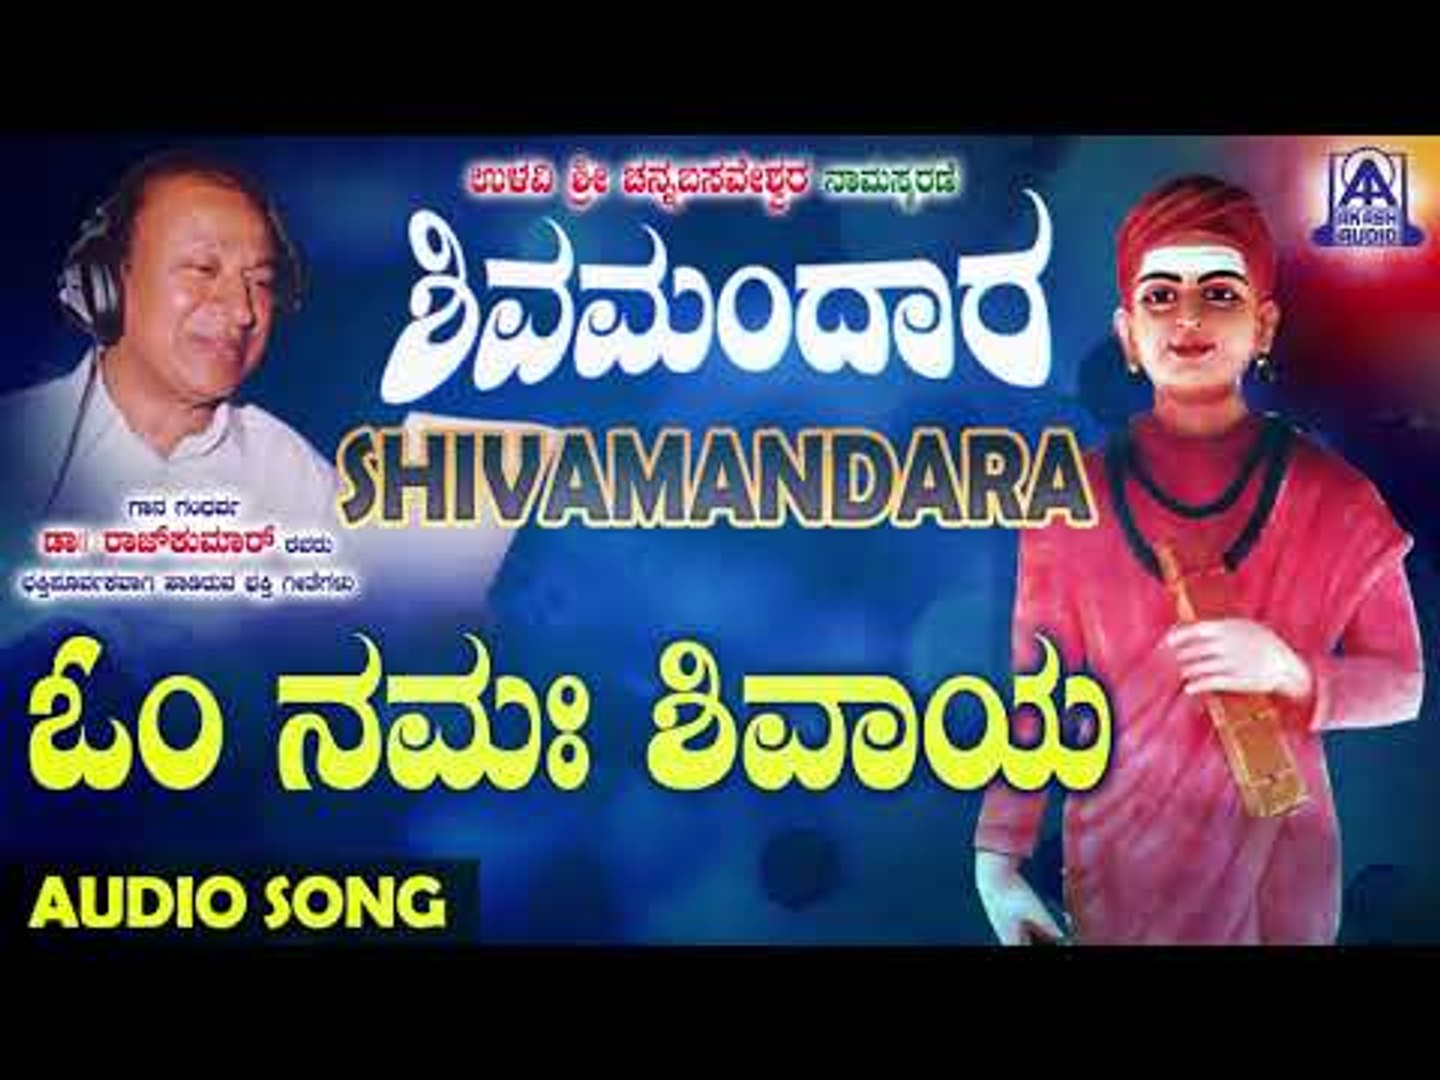 ಈಶ್ವರಭಕ್ತಿಗೀತೆಗಳು - Om Namah Shivaya | Shivamandara | Kannada Devotional Songs | Akash Audio